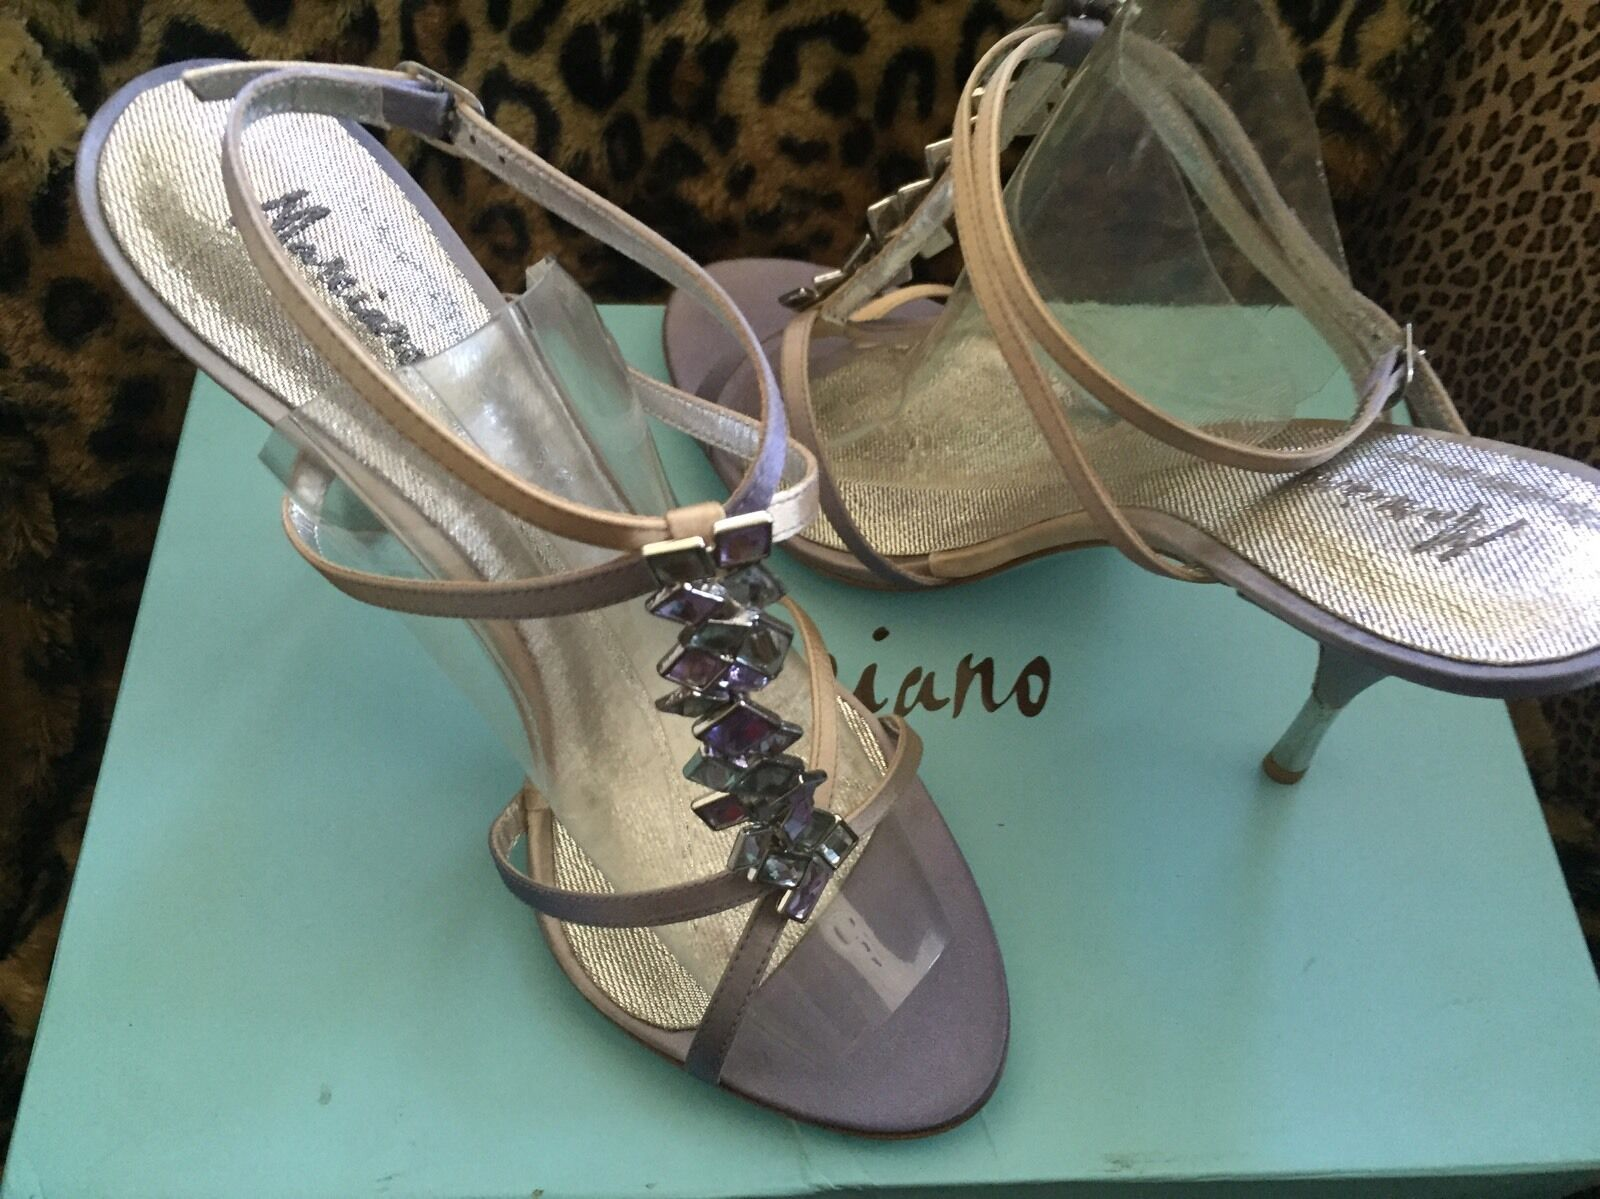 Nwt Marciano Satin shoes PMTRISH2 10